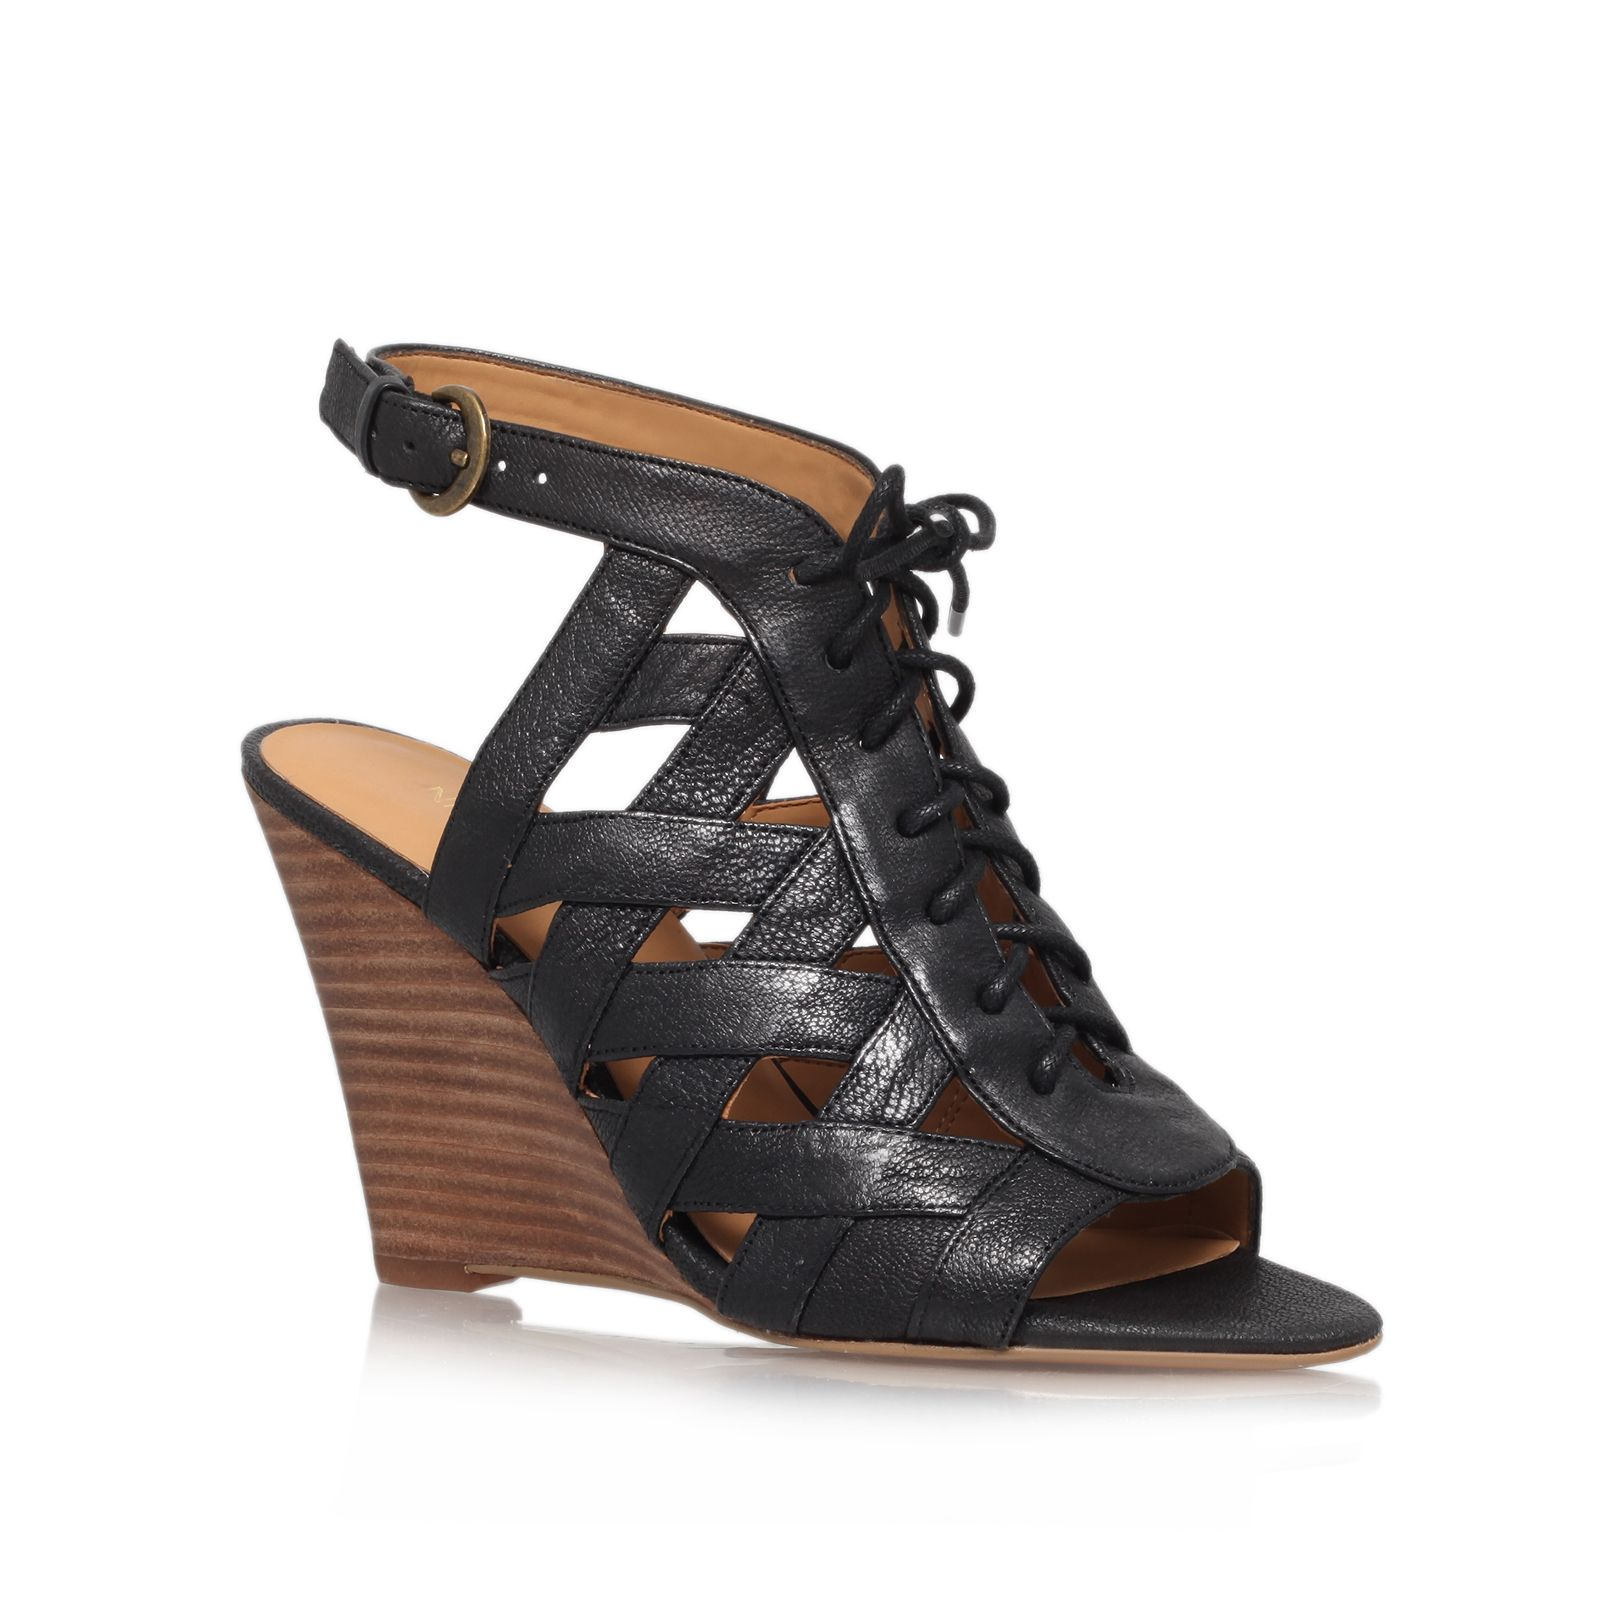 Maxamilian high heel wedge sandals